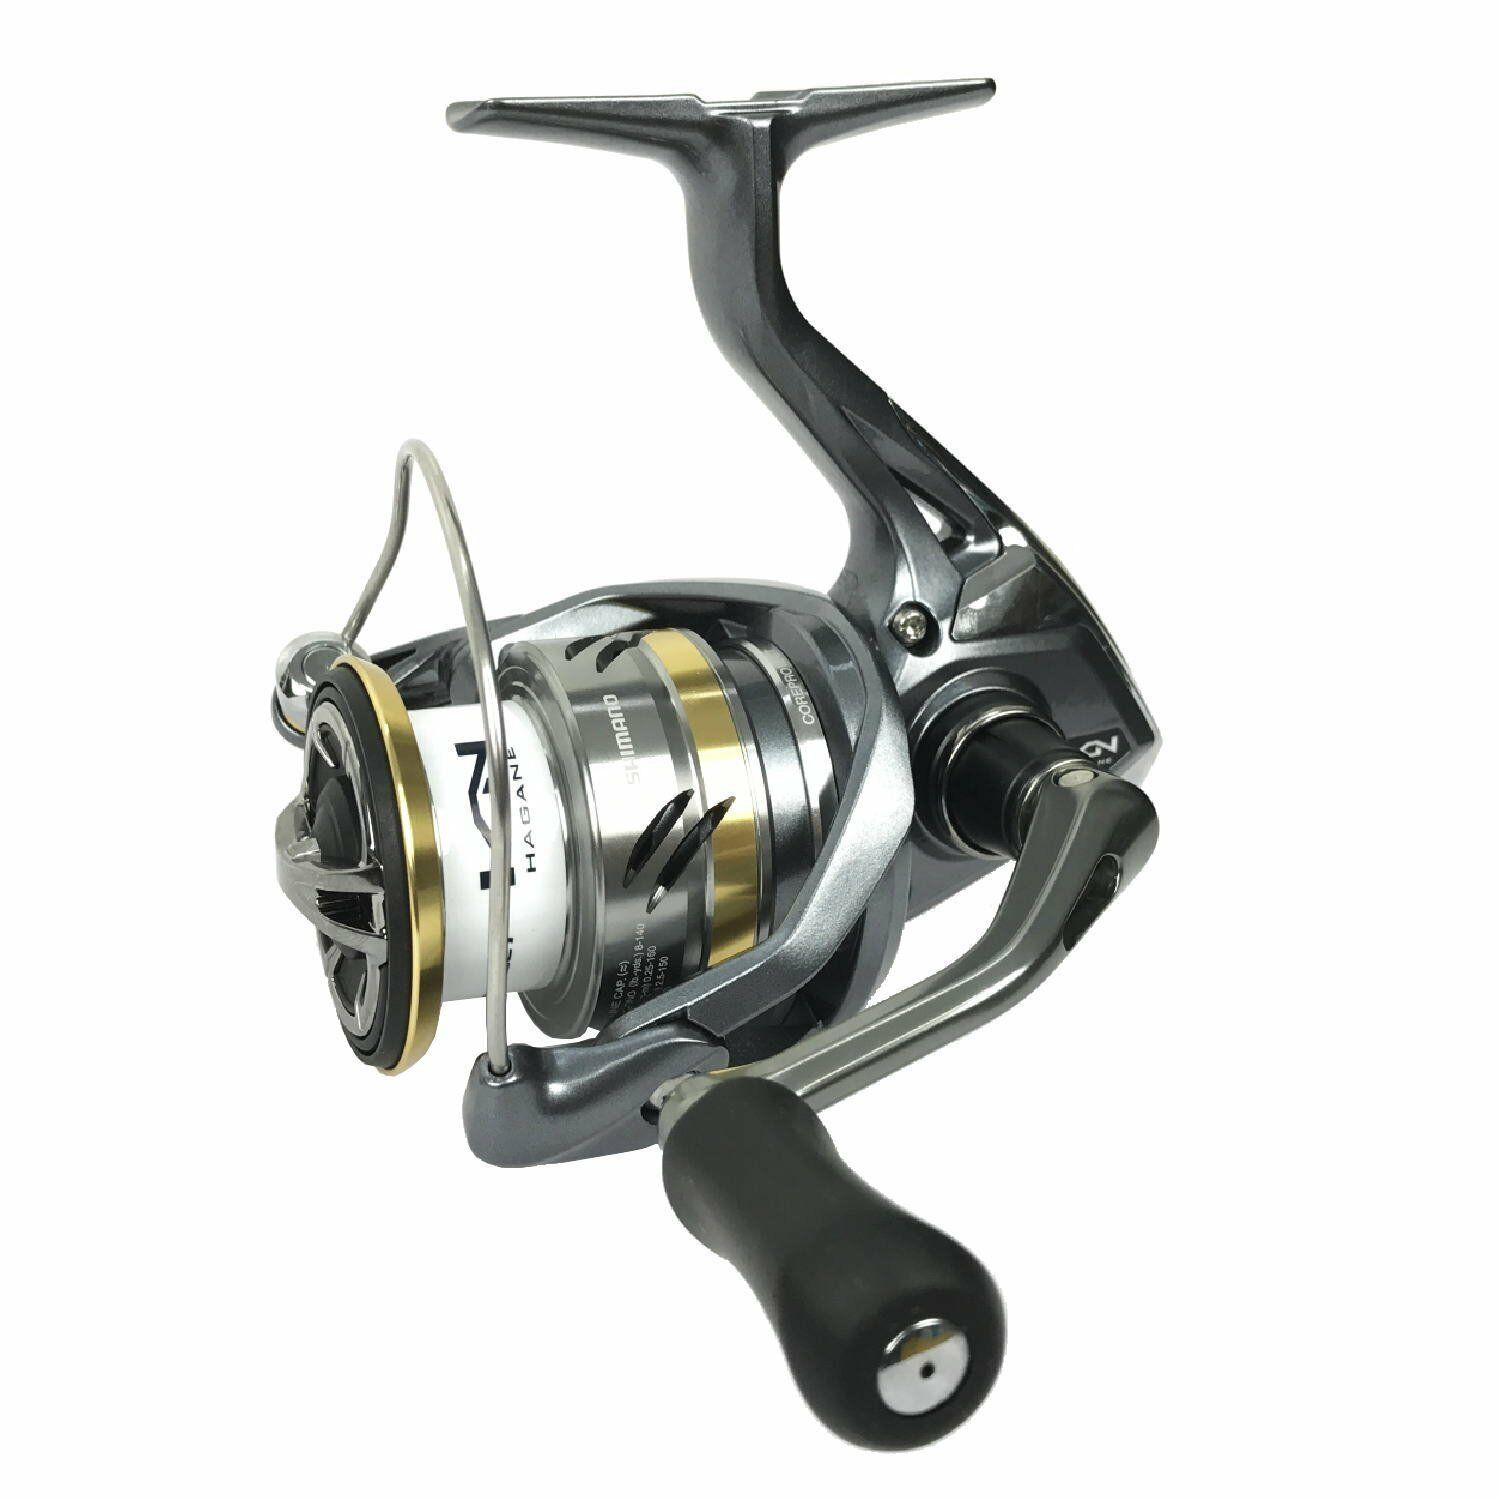 Shimano Reel 17 ULTEGRA 2500 Japan import